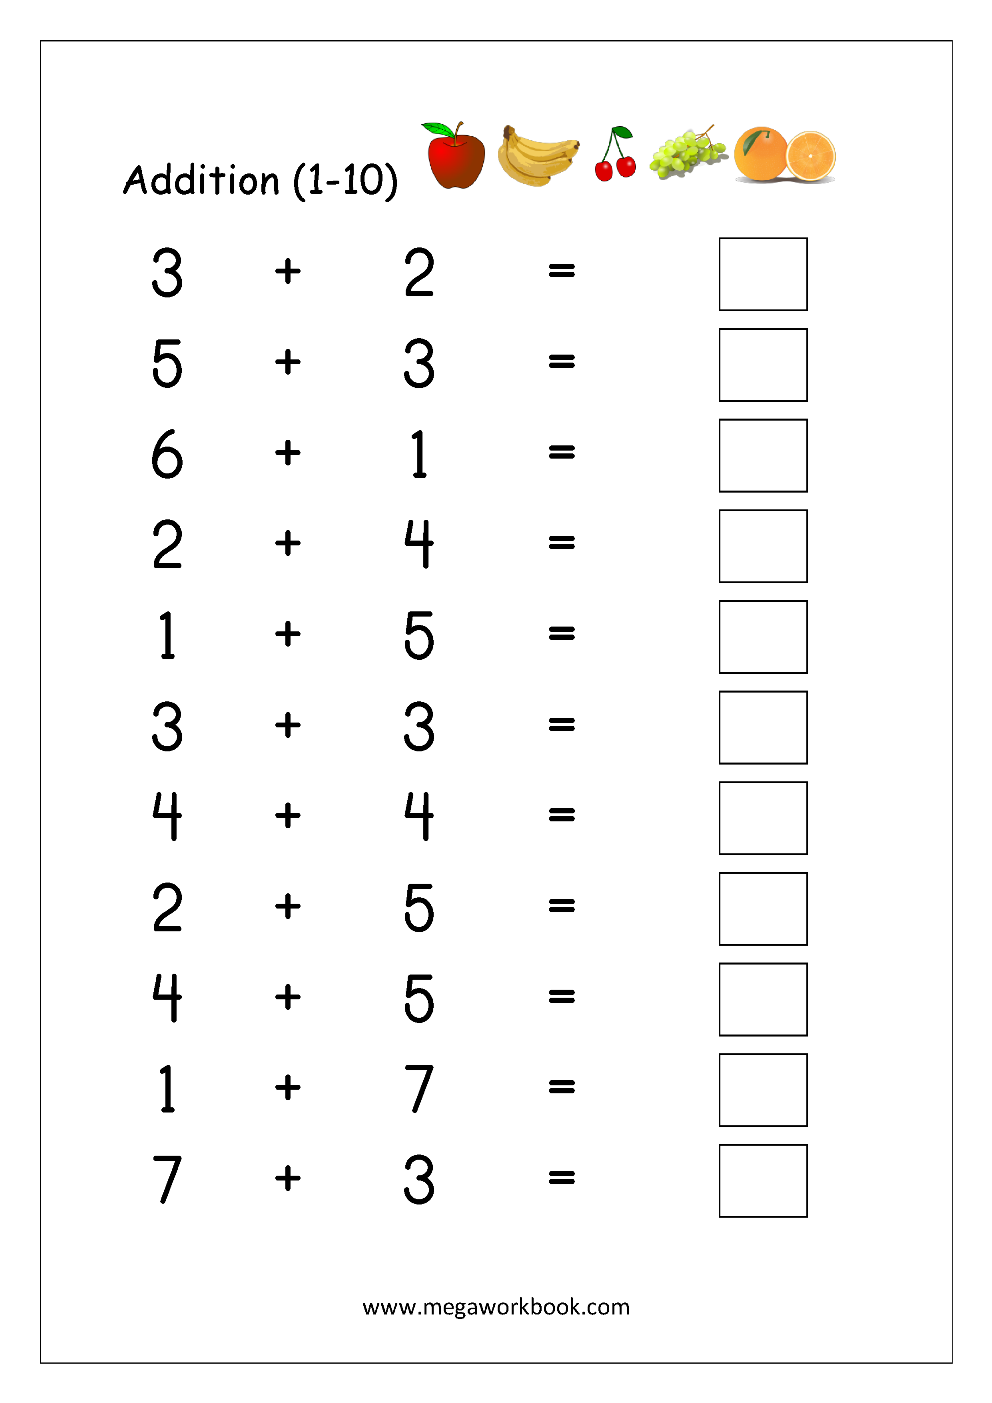 Free Printable Number Addition Worksheets (1-10) For ...